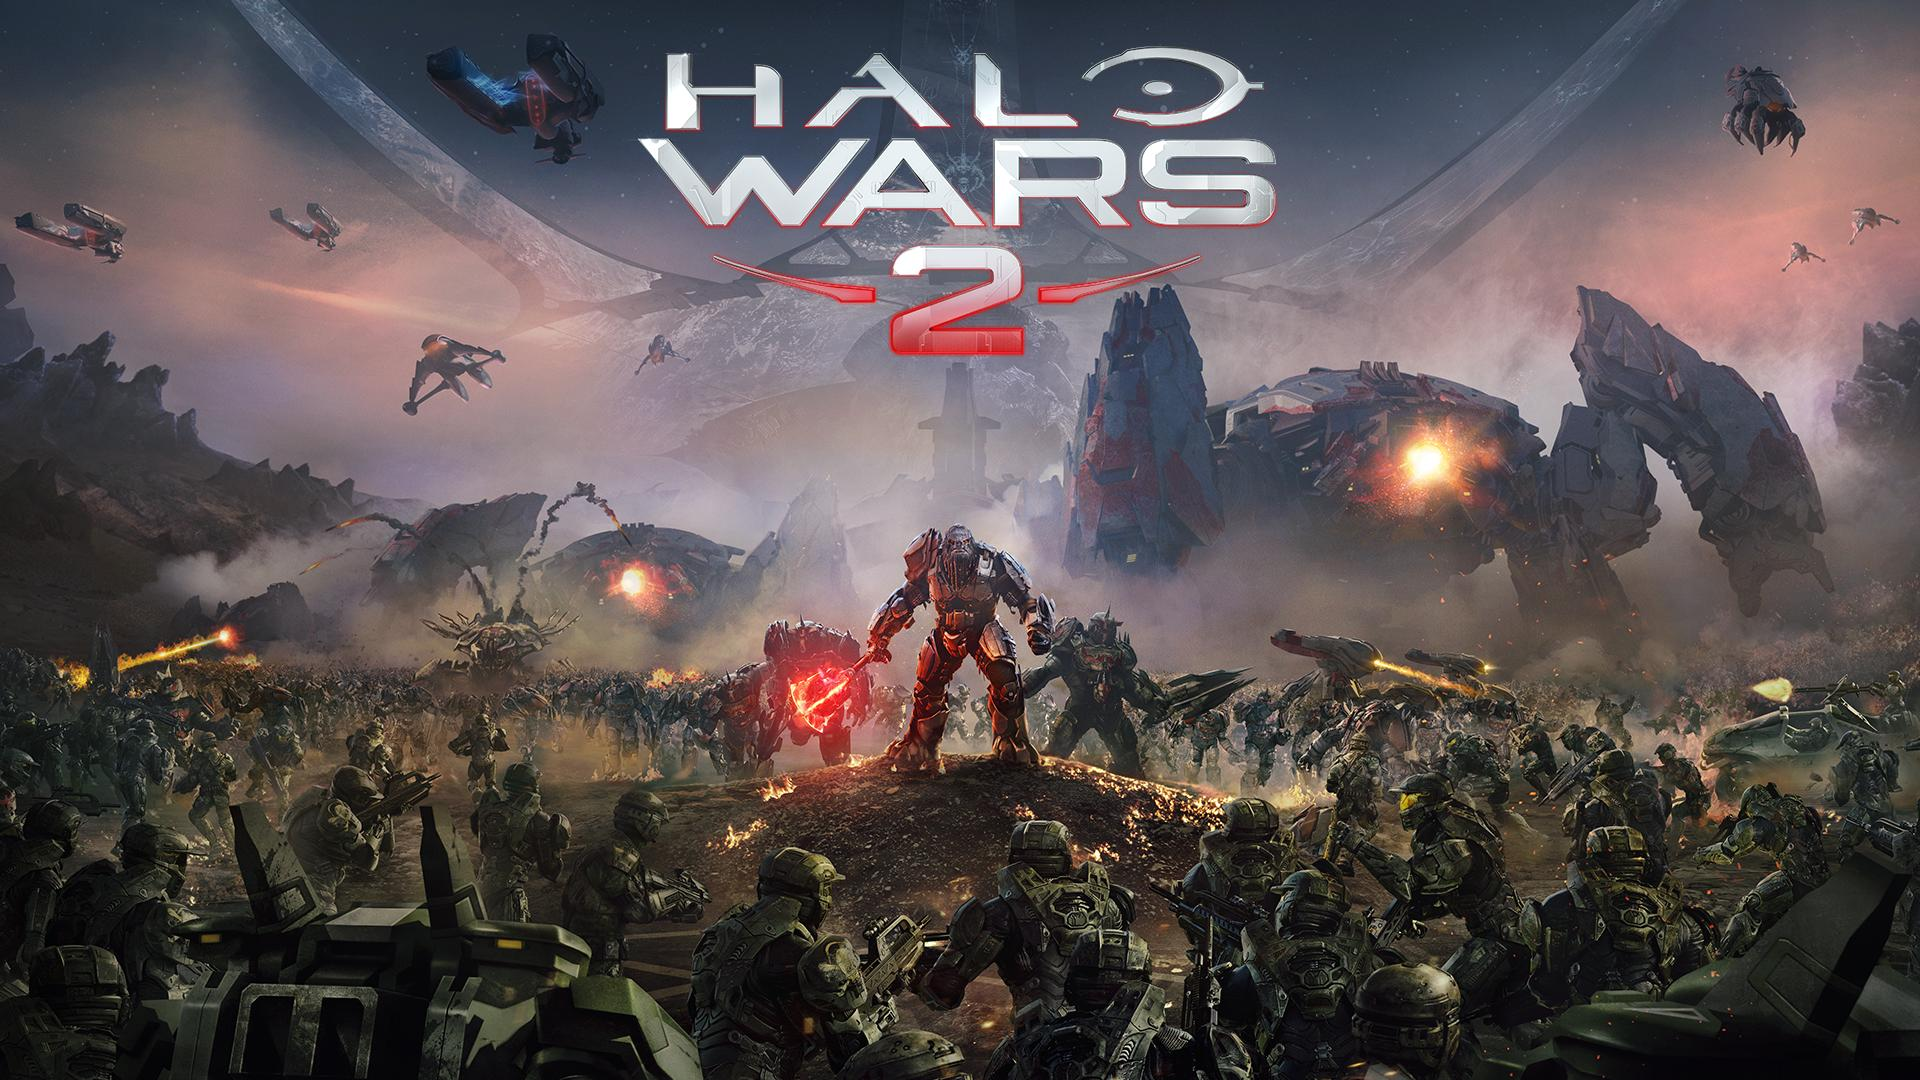 halo-wars-2-release-date-price-gameplay-trailers-2017